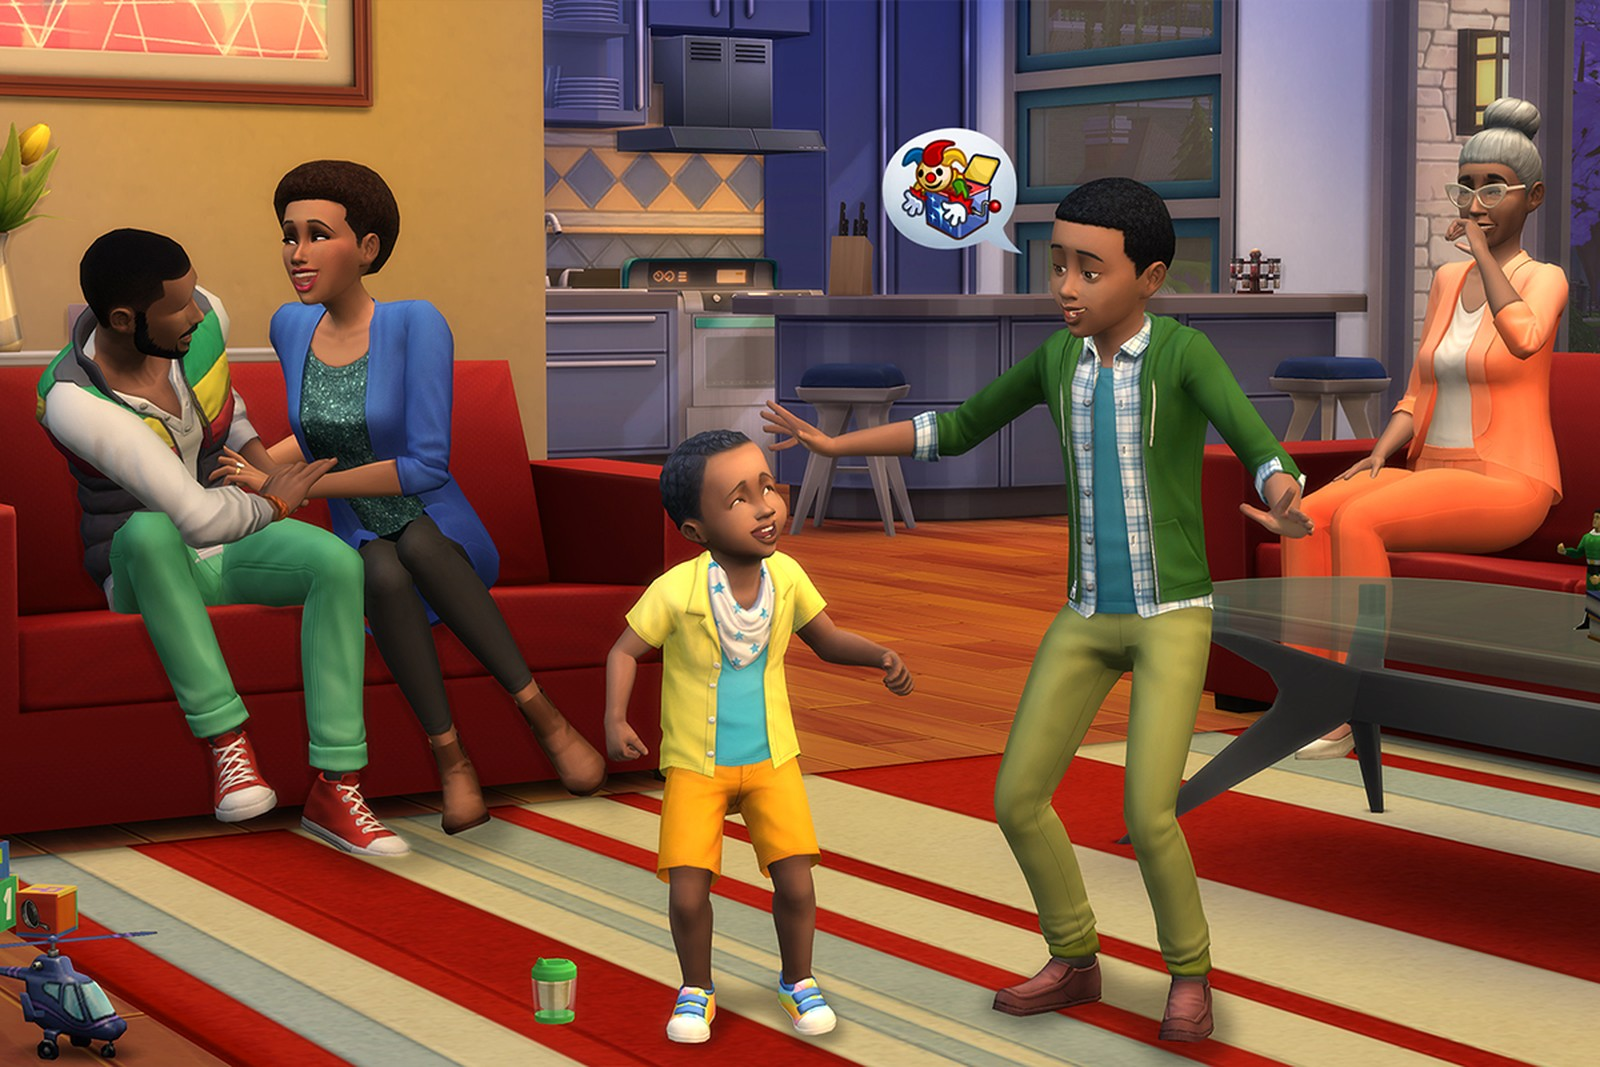 The Sims 4 Game Packs Rank everything You Need To Know